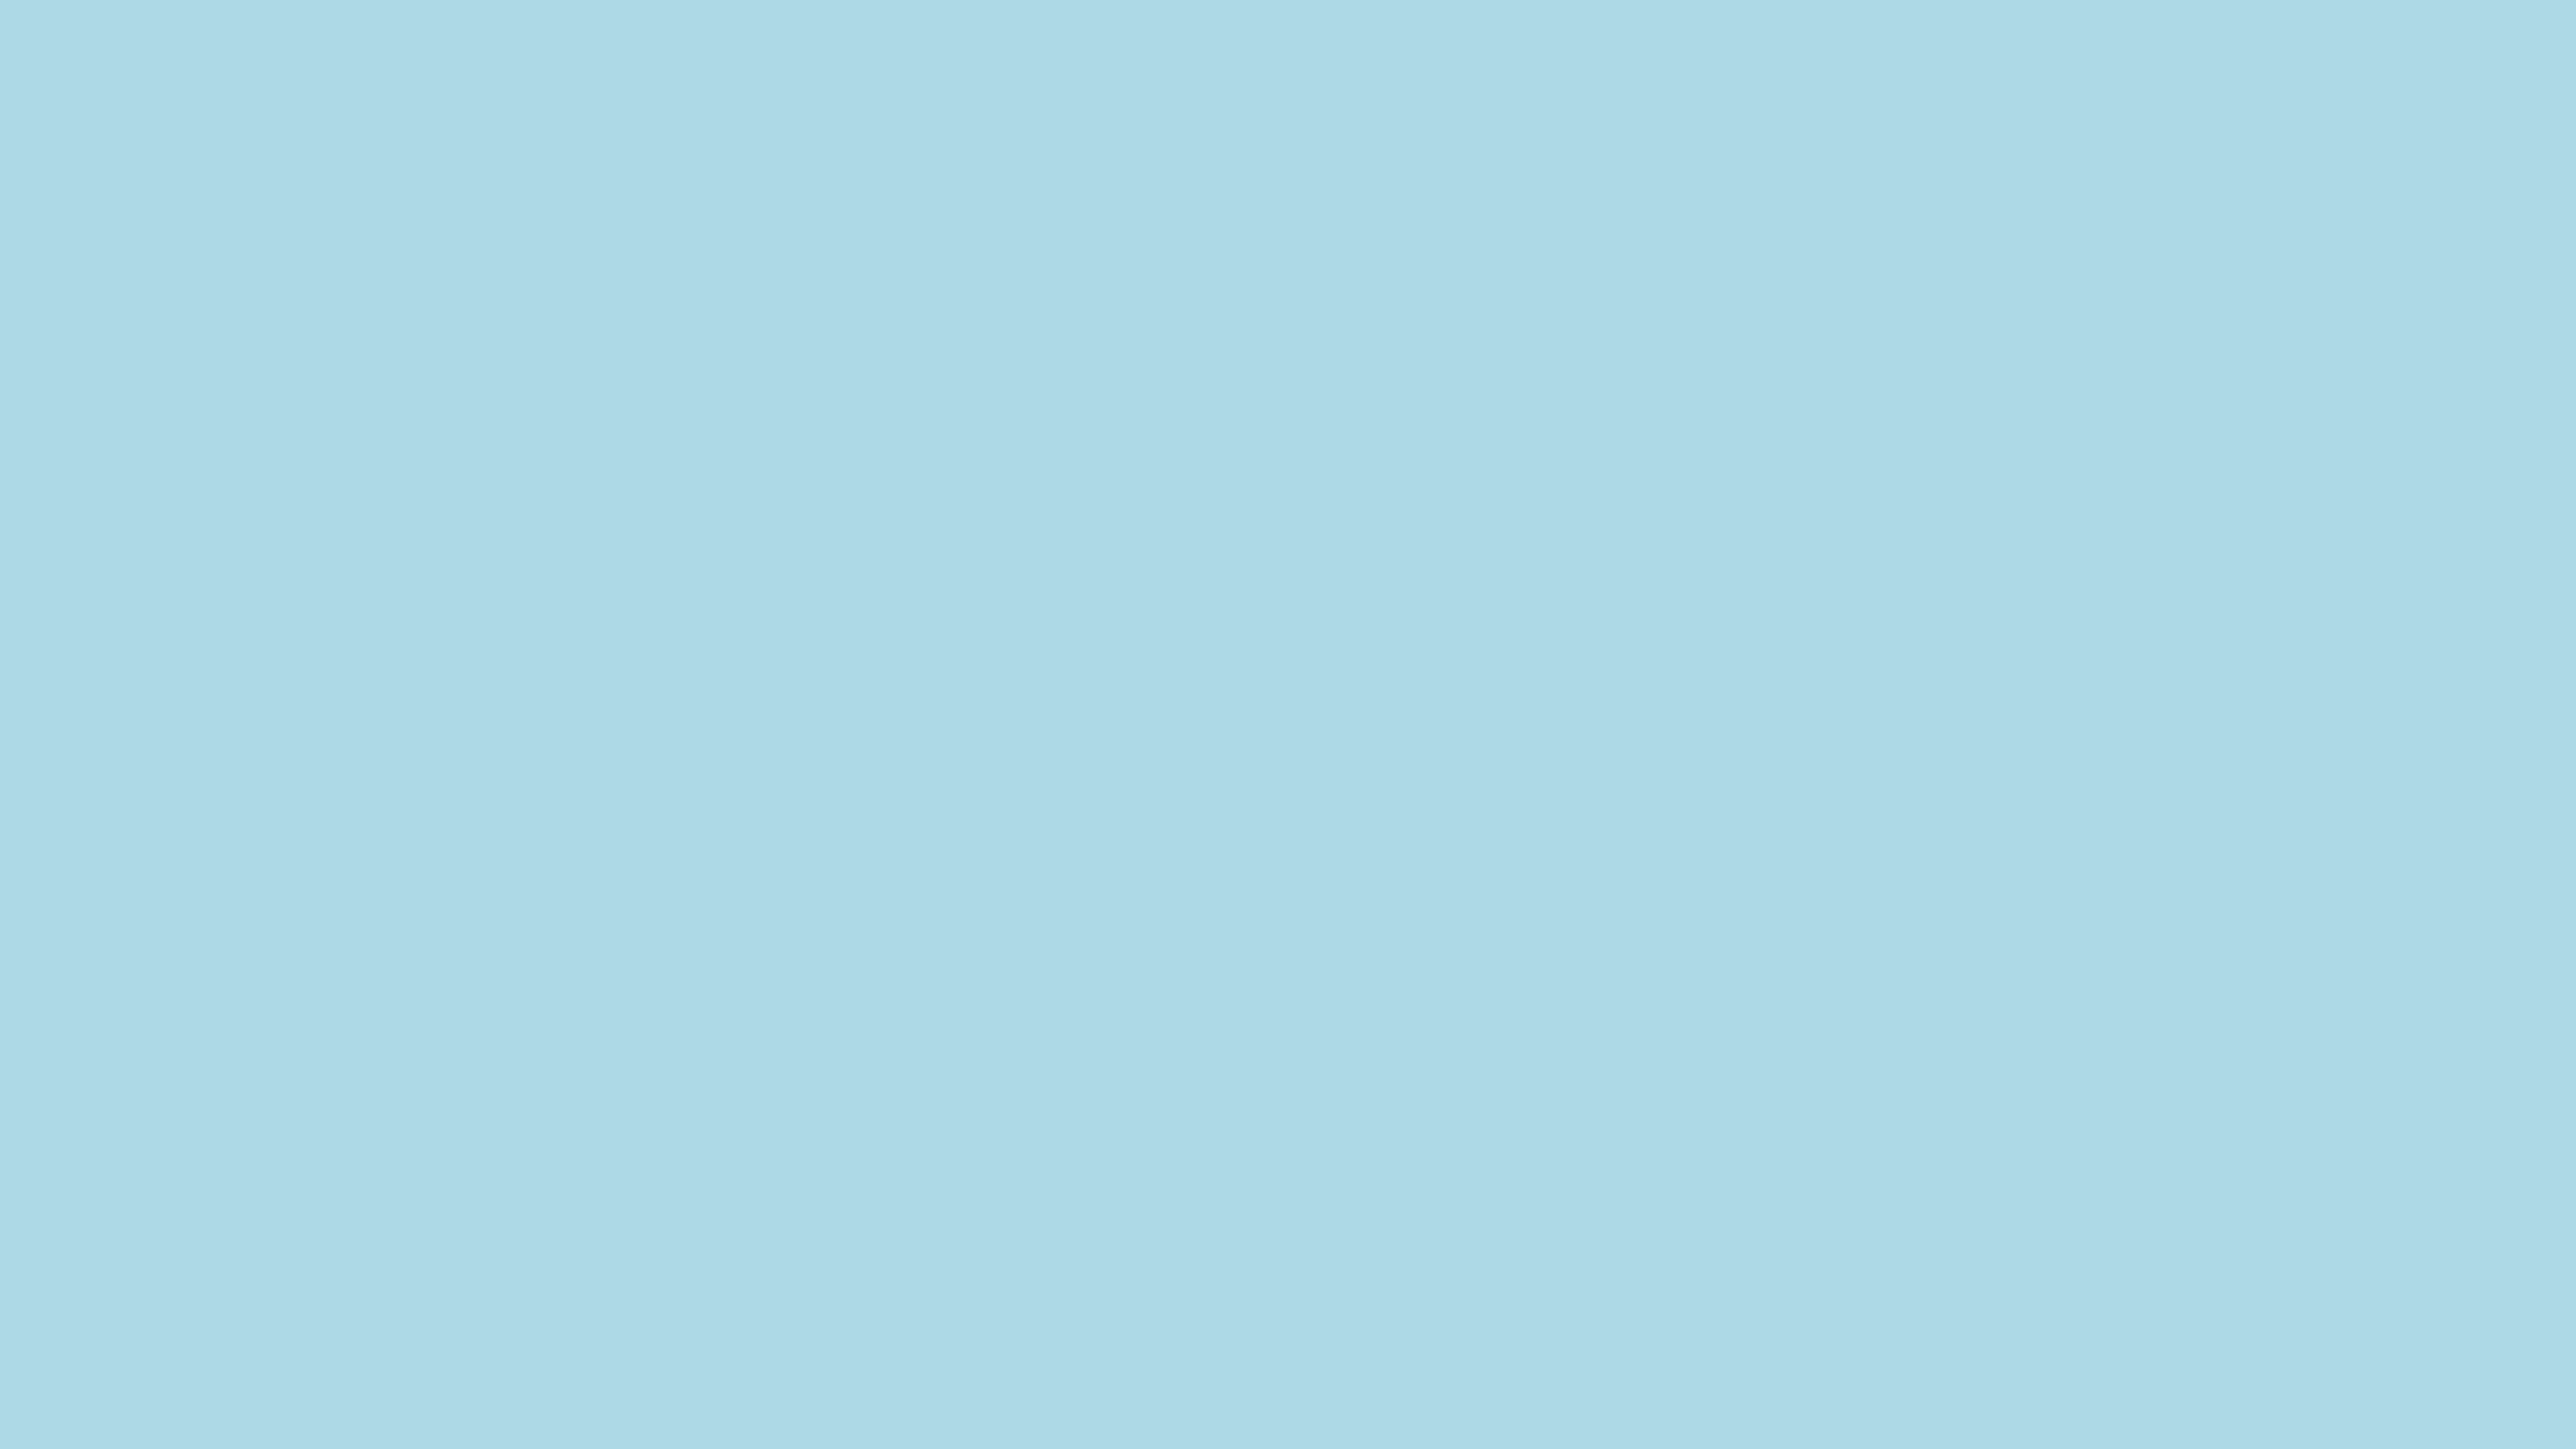 Sky Hd Wallpaper 3840x2160 Light Blue Solid Color Background